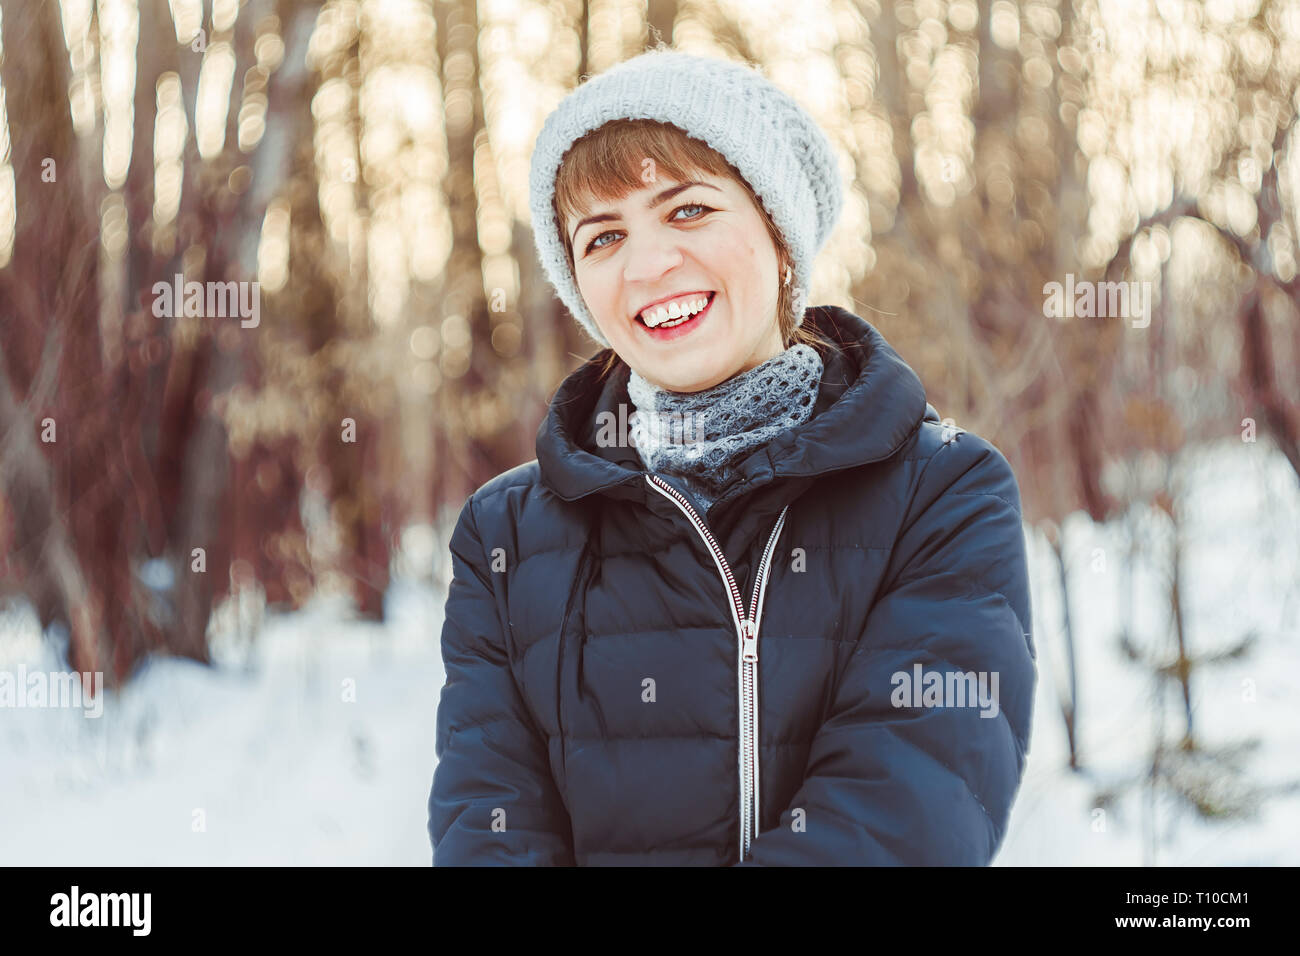 d1817a64c50d8 Close-up portrait of a cheerful girl in warm clothes with a backpack,  standing